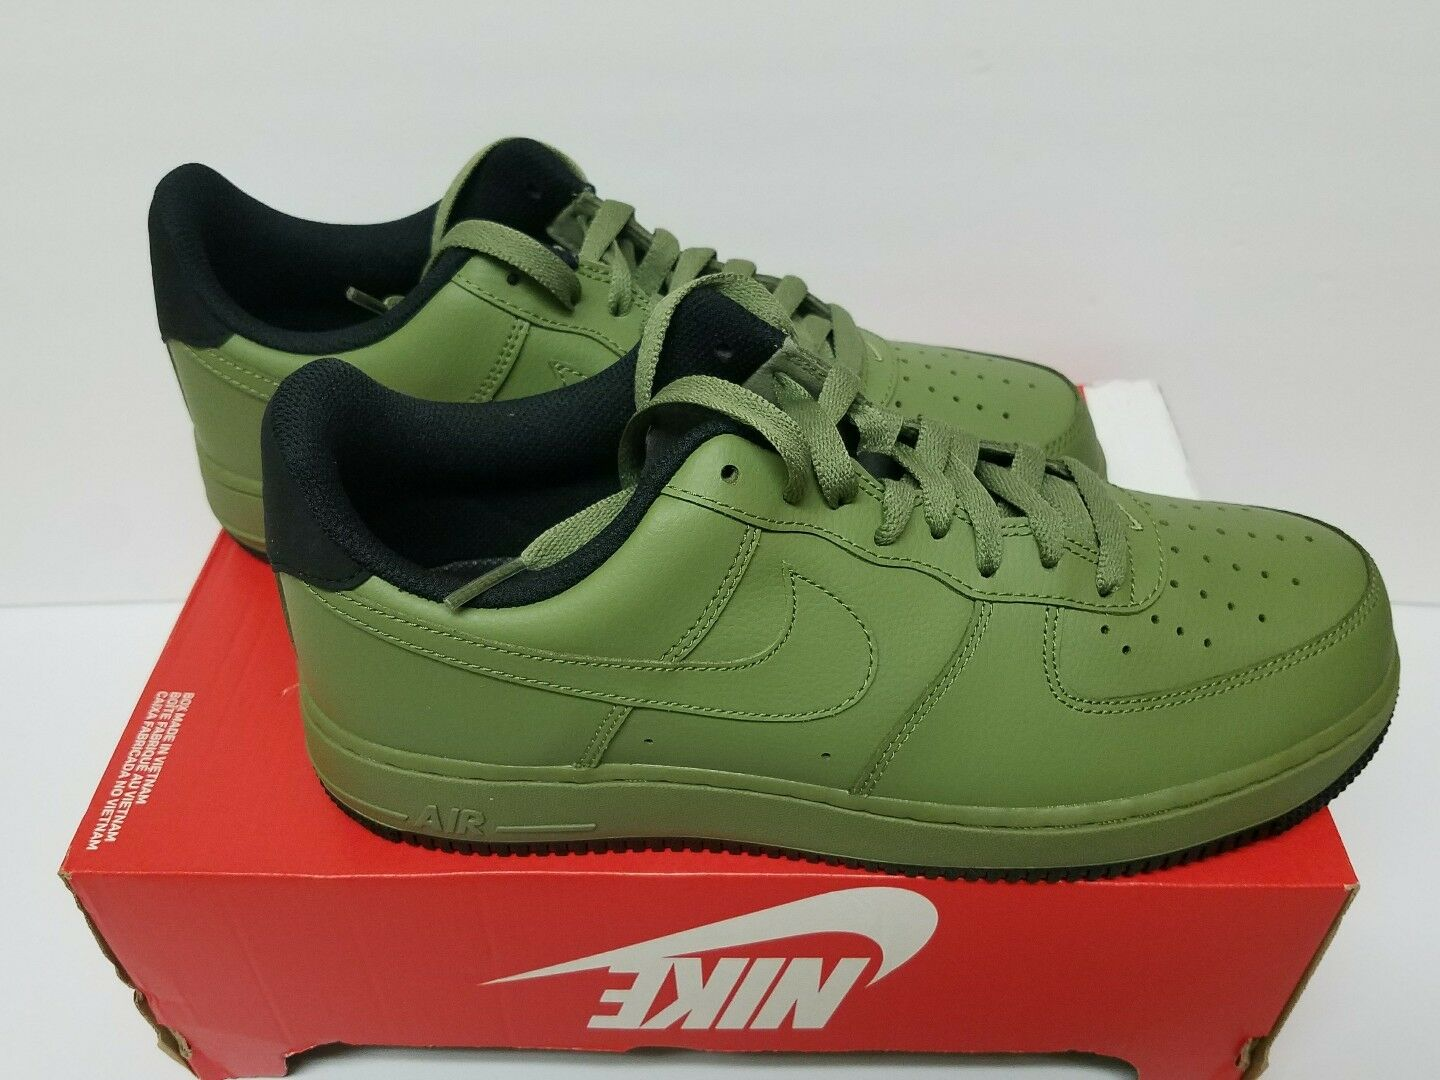 NIKE AIR FORCE 1 LOW '07 Size 10 - 315122 310 PALM GREEN/BLACK